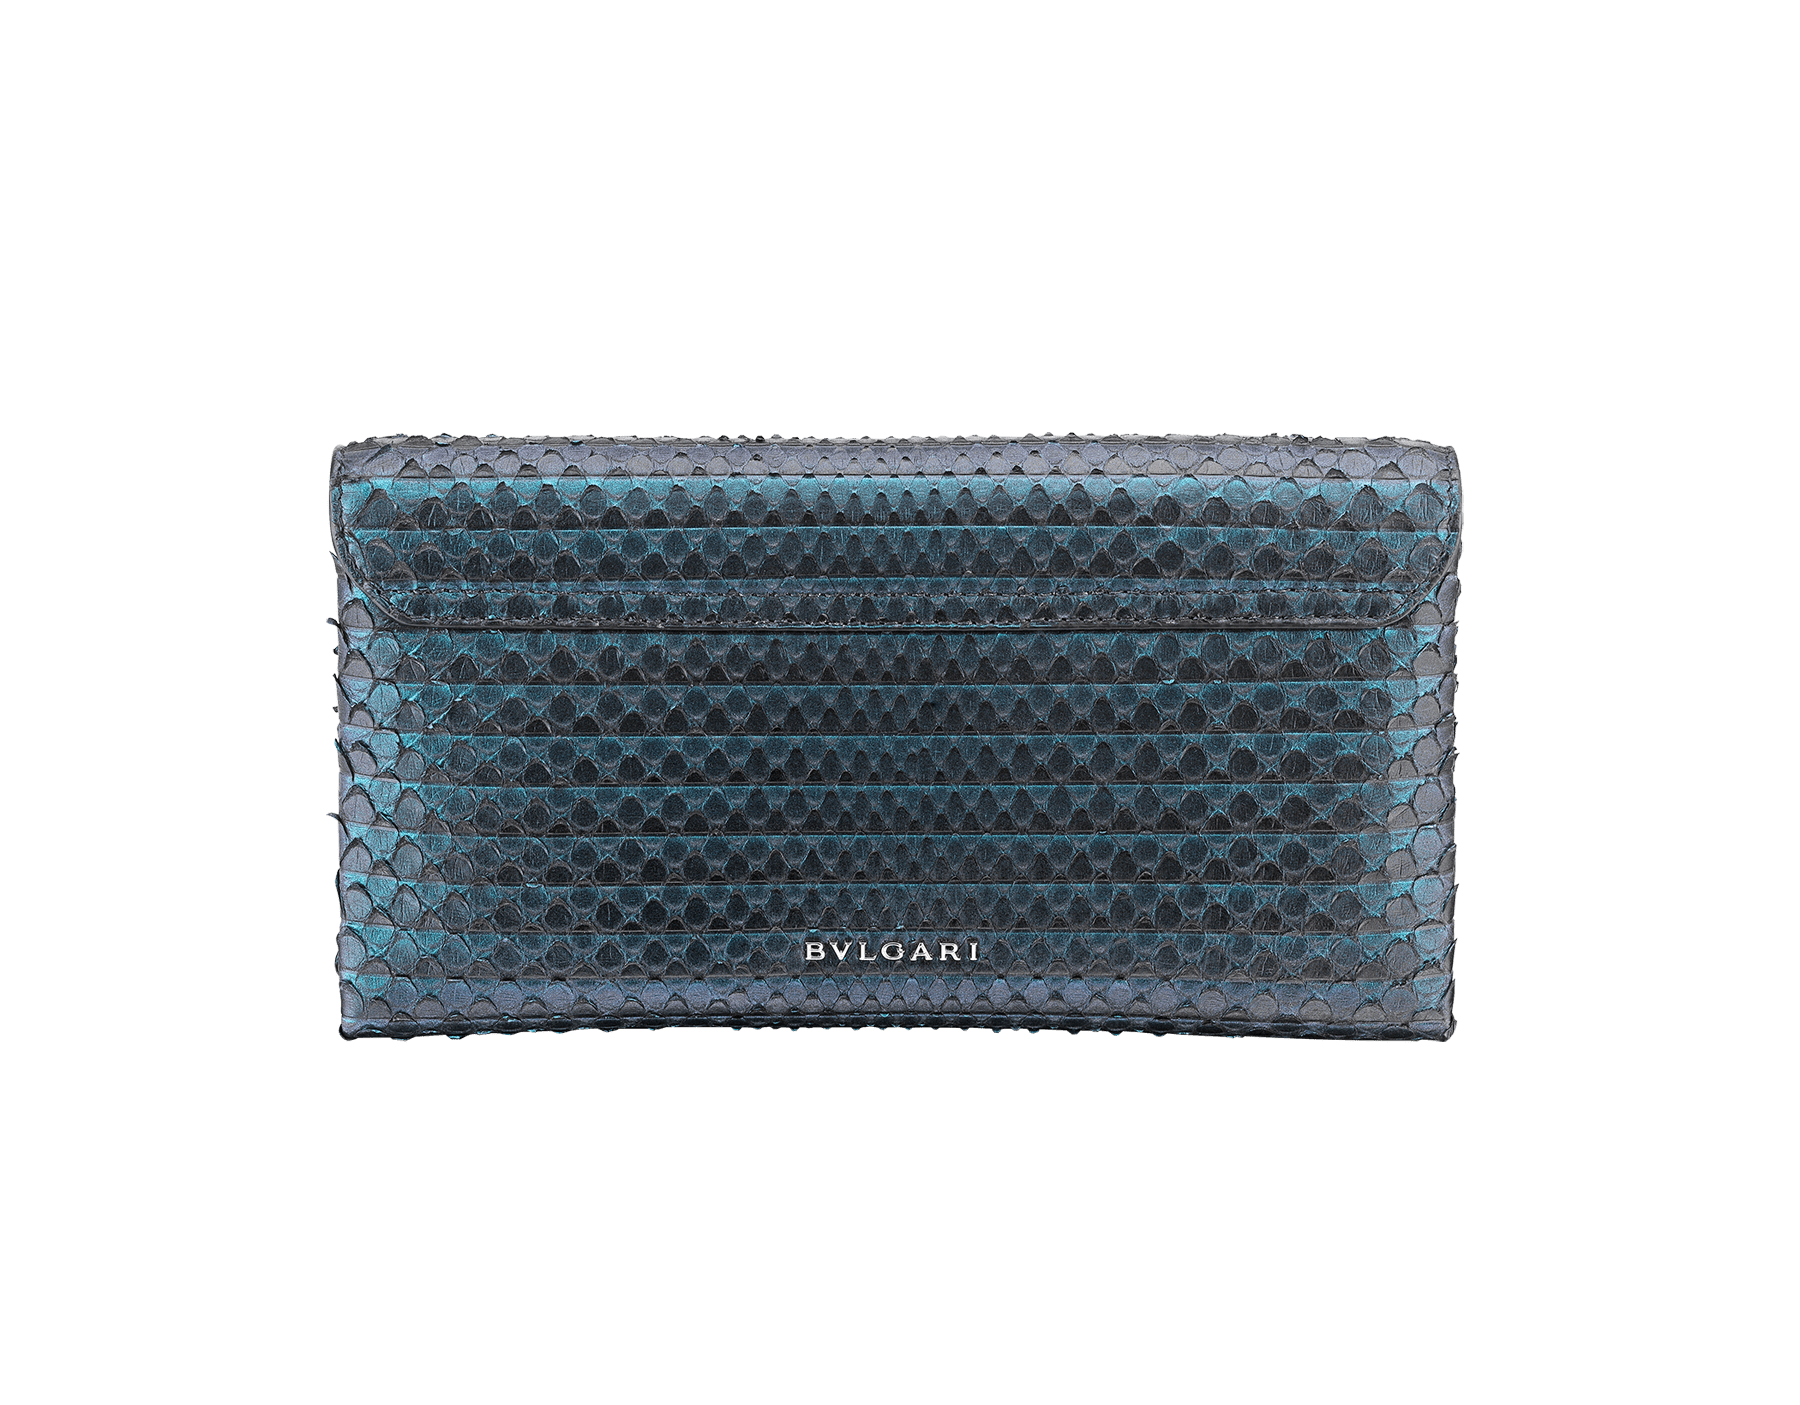 """Serpenti"" evening clutch bag in deep jade Plissé python skin. Iconic snakehead stud closure with tassel in palladium plated brass enriched with black and deep jade enamel and black onyx eyes. 288168 image 3"